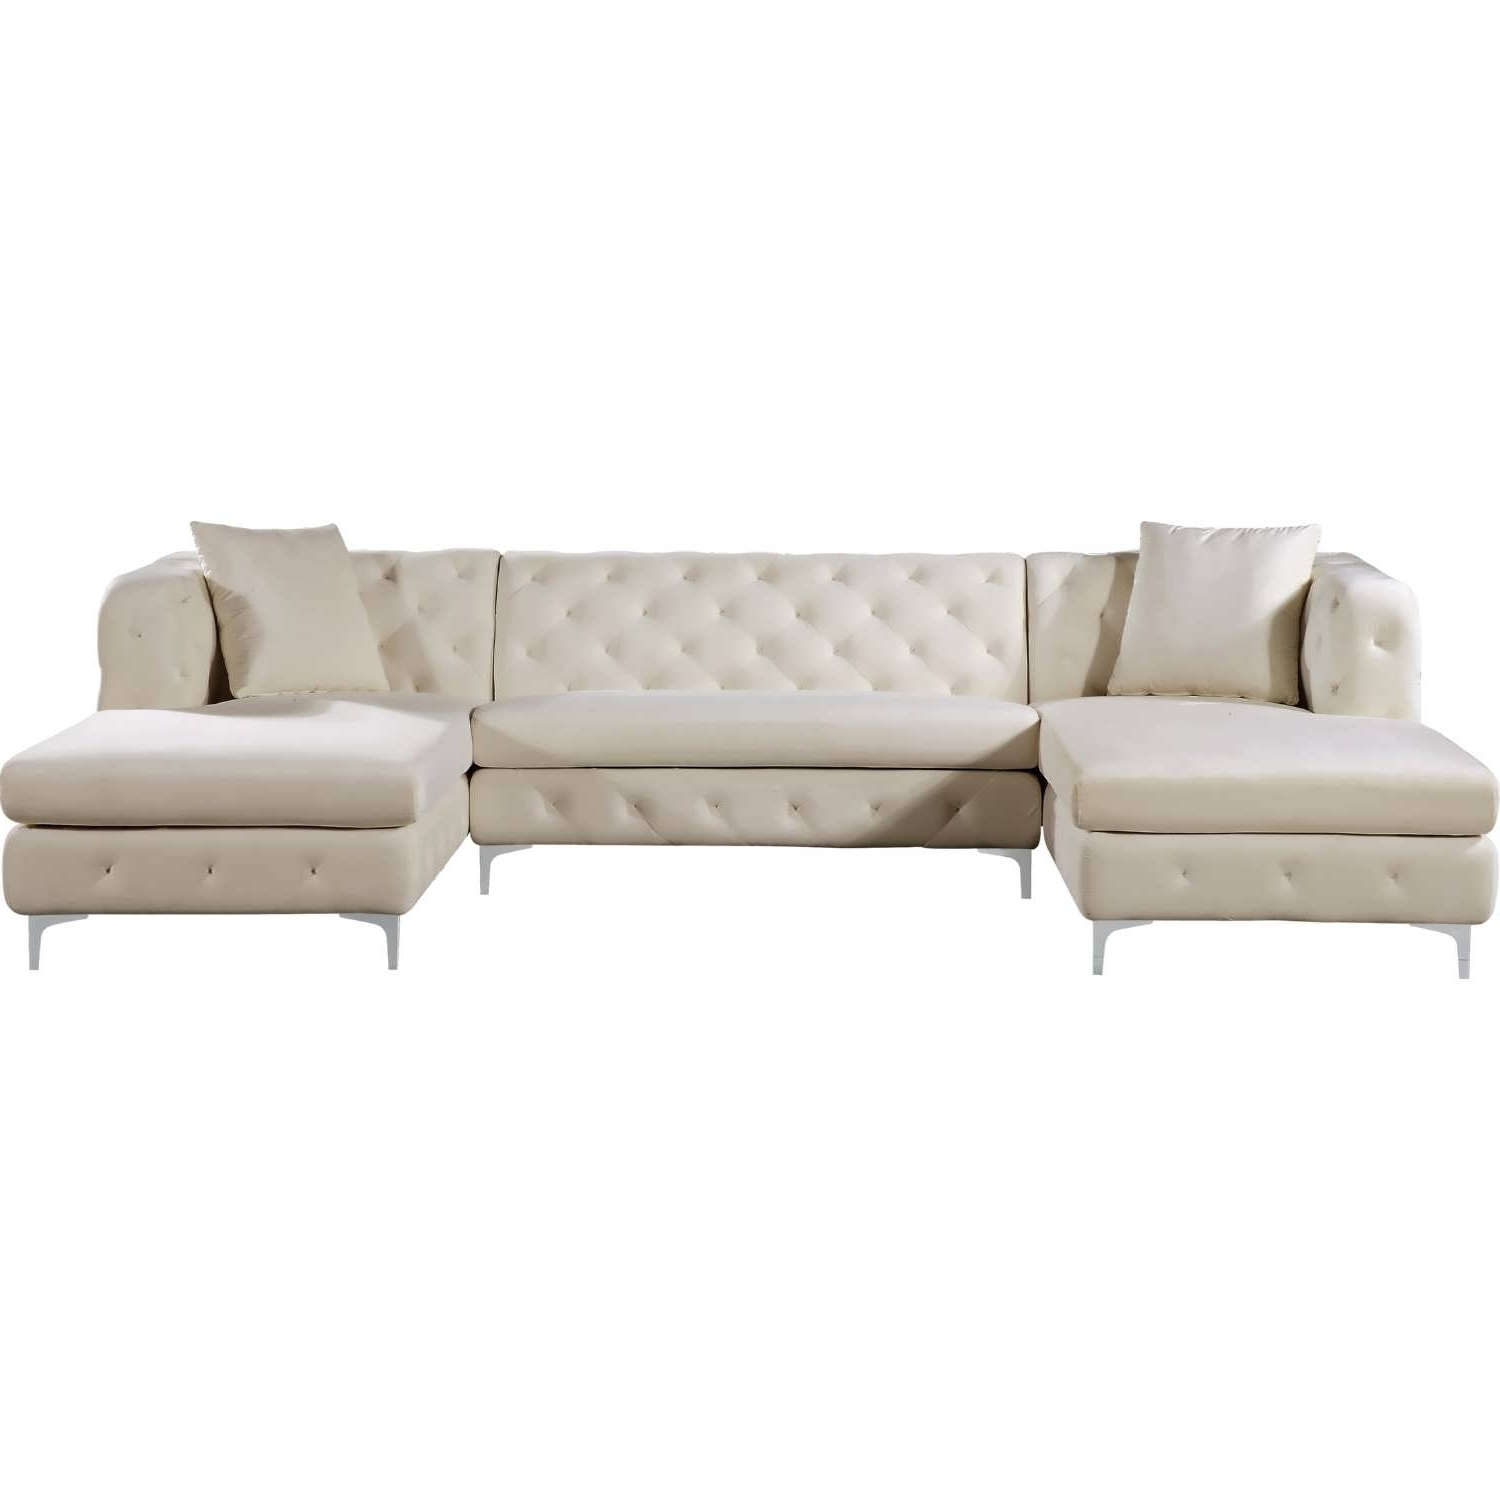 Small Chaise Sofas Within 2018 Sofa : Sectional Sofa With Chaise Small Chaise Blue Sectional Sofa (View 13 of 15)